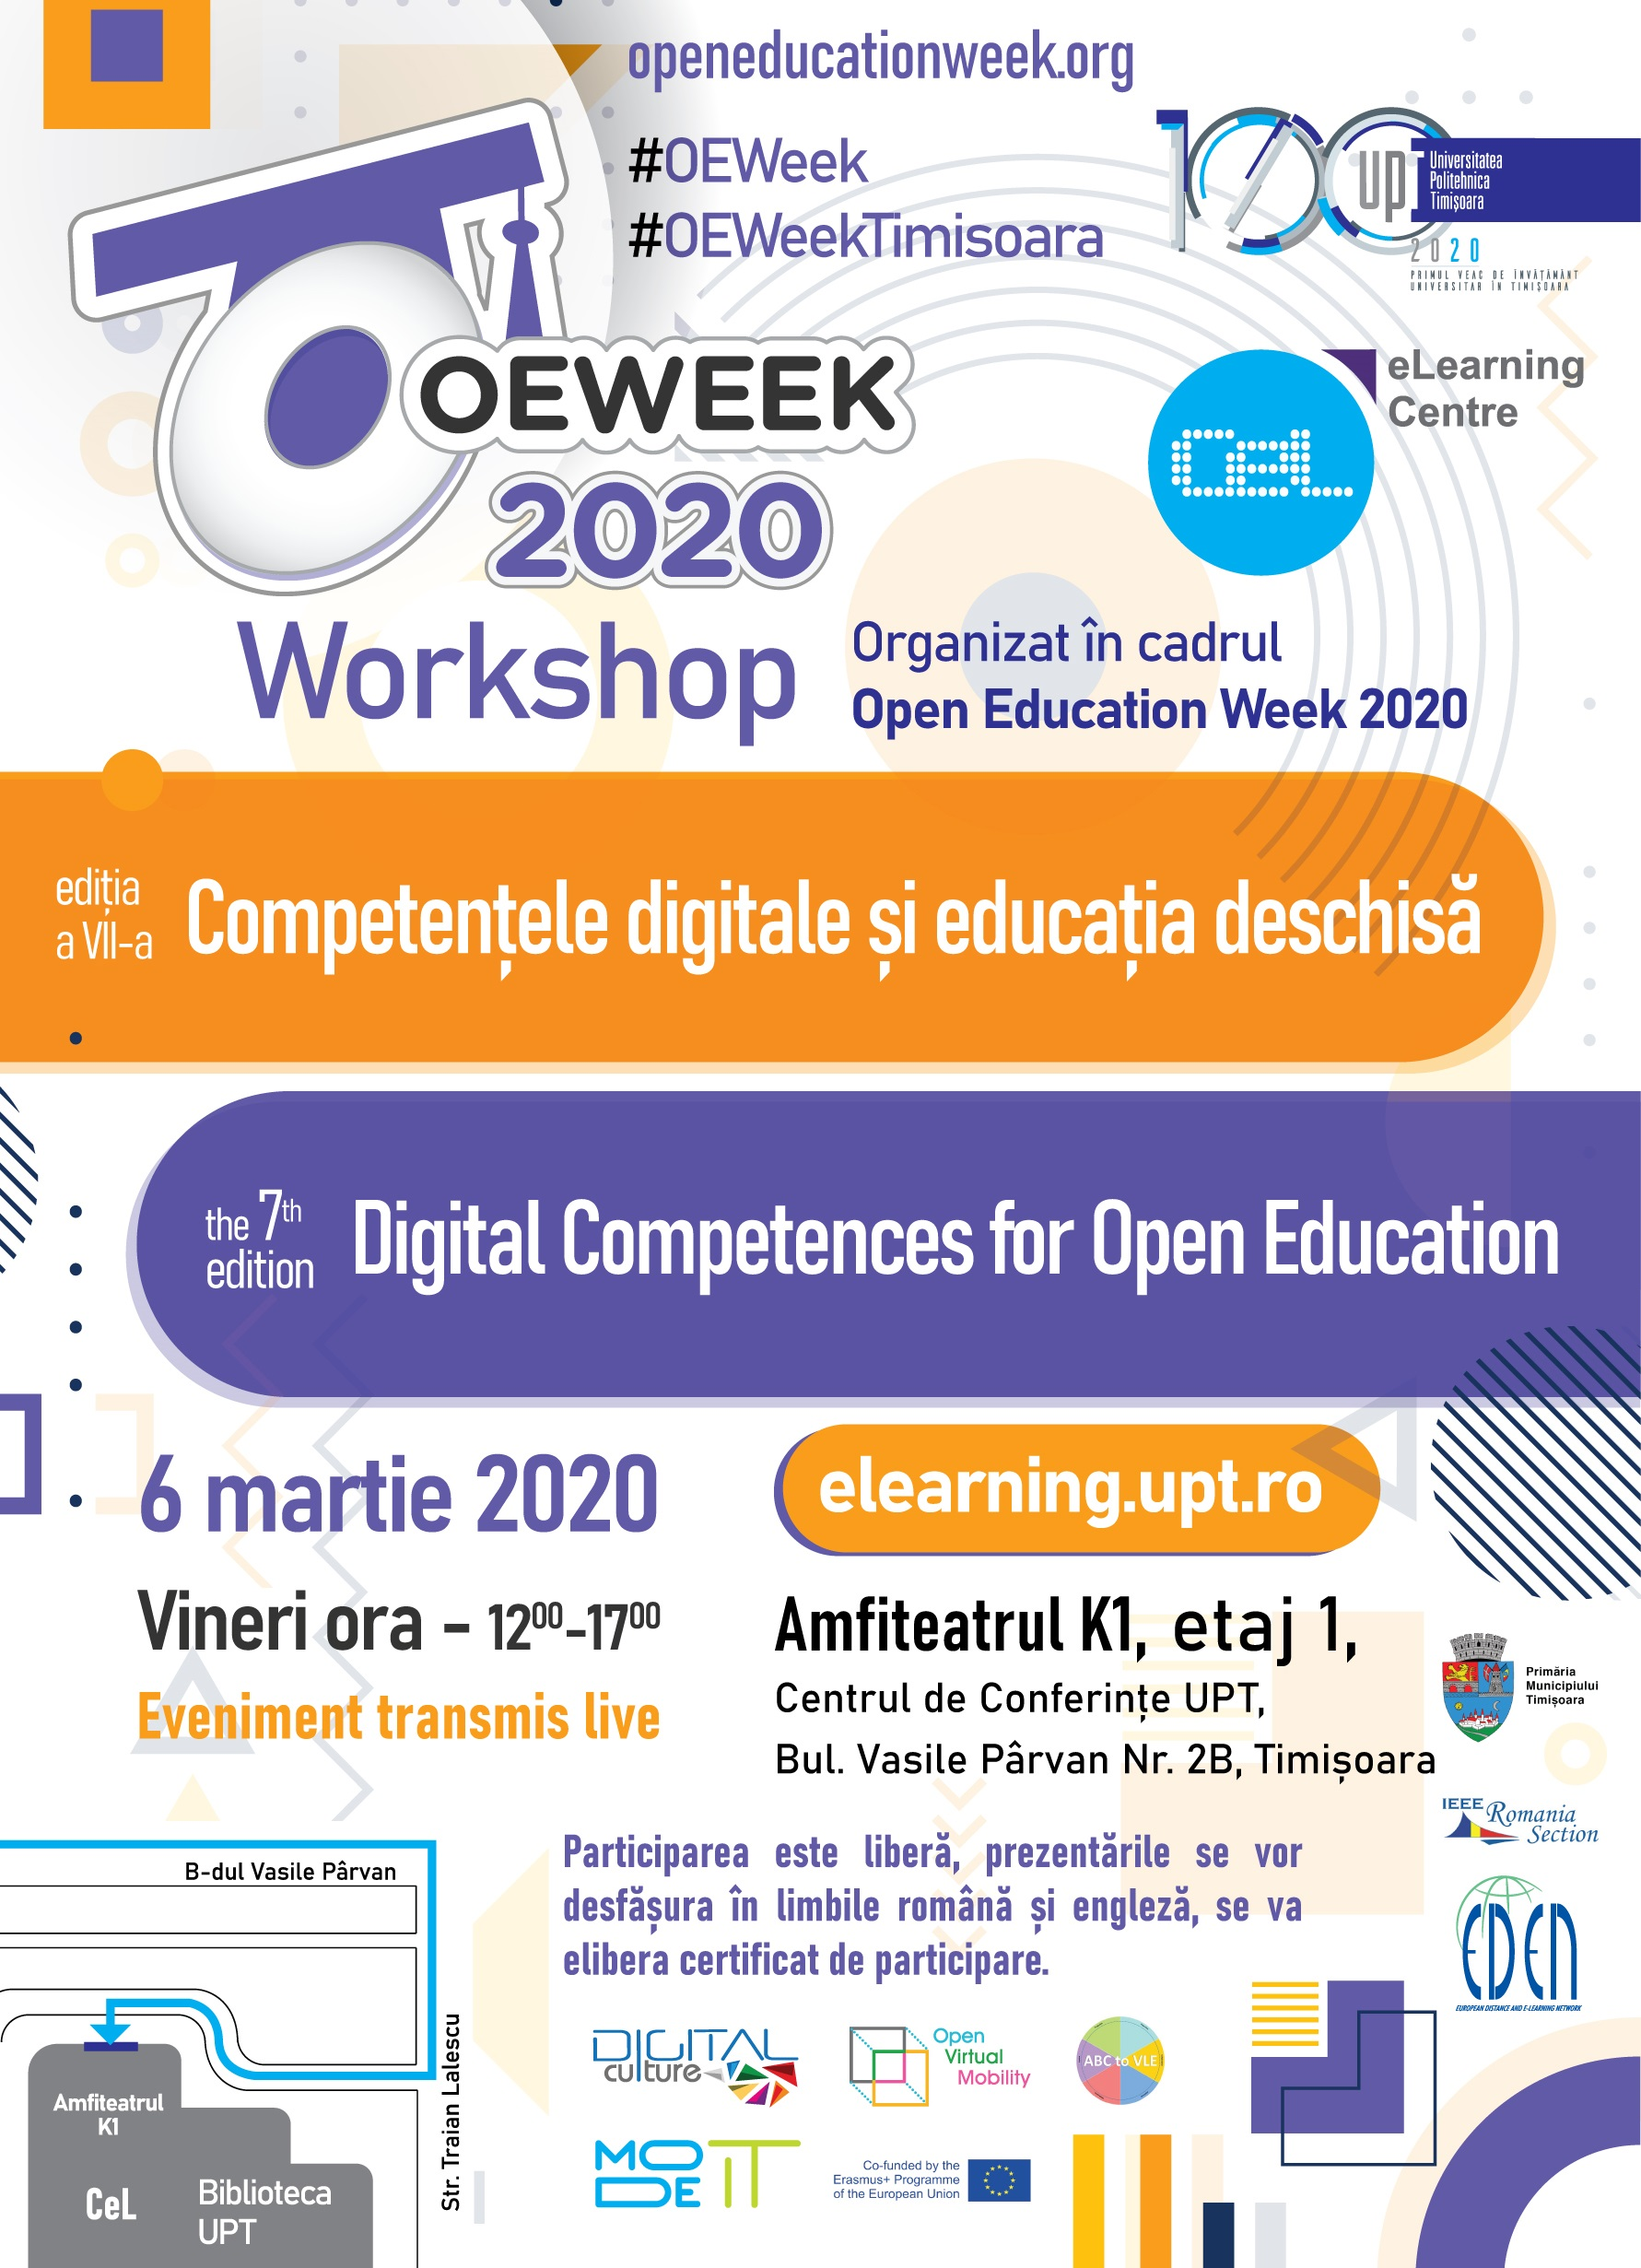 Registration open for the Digital Competences for Open Education workshop